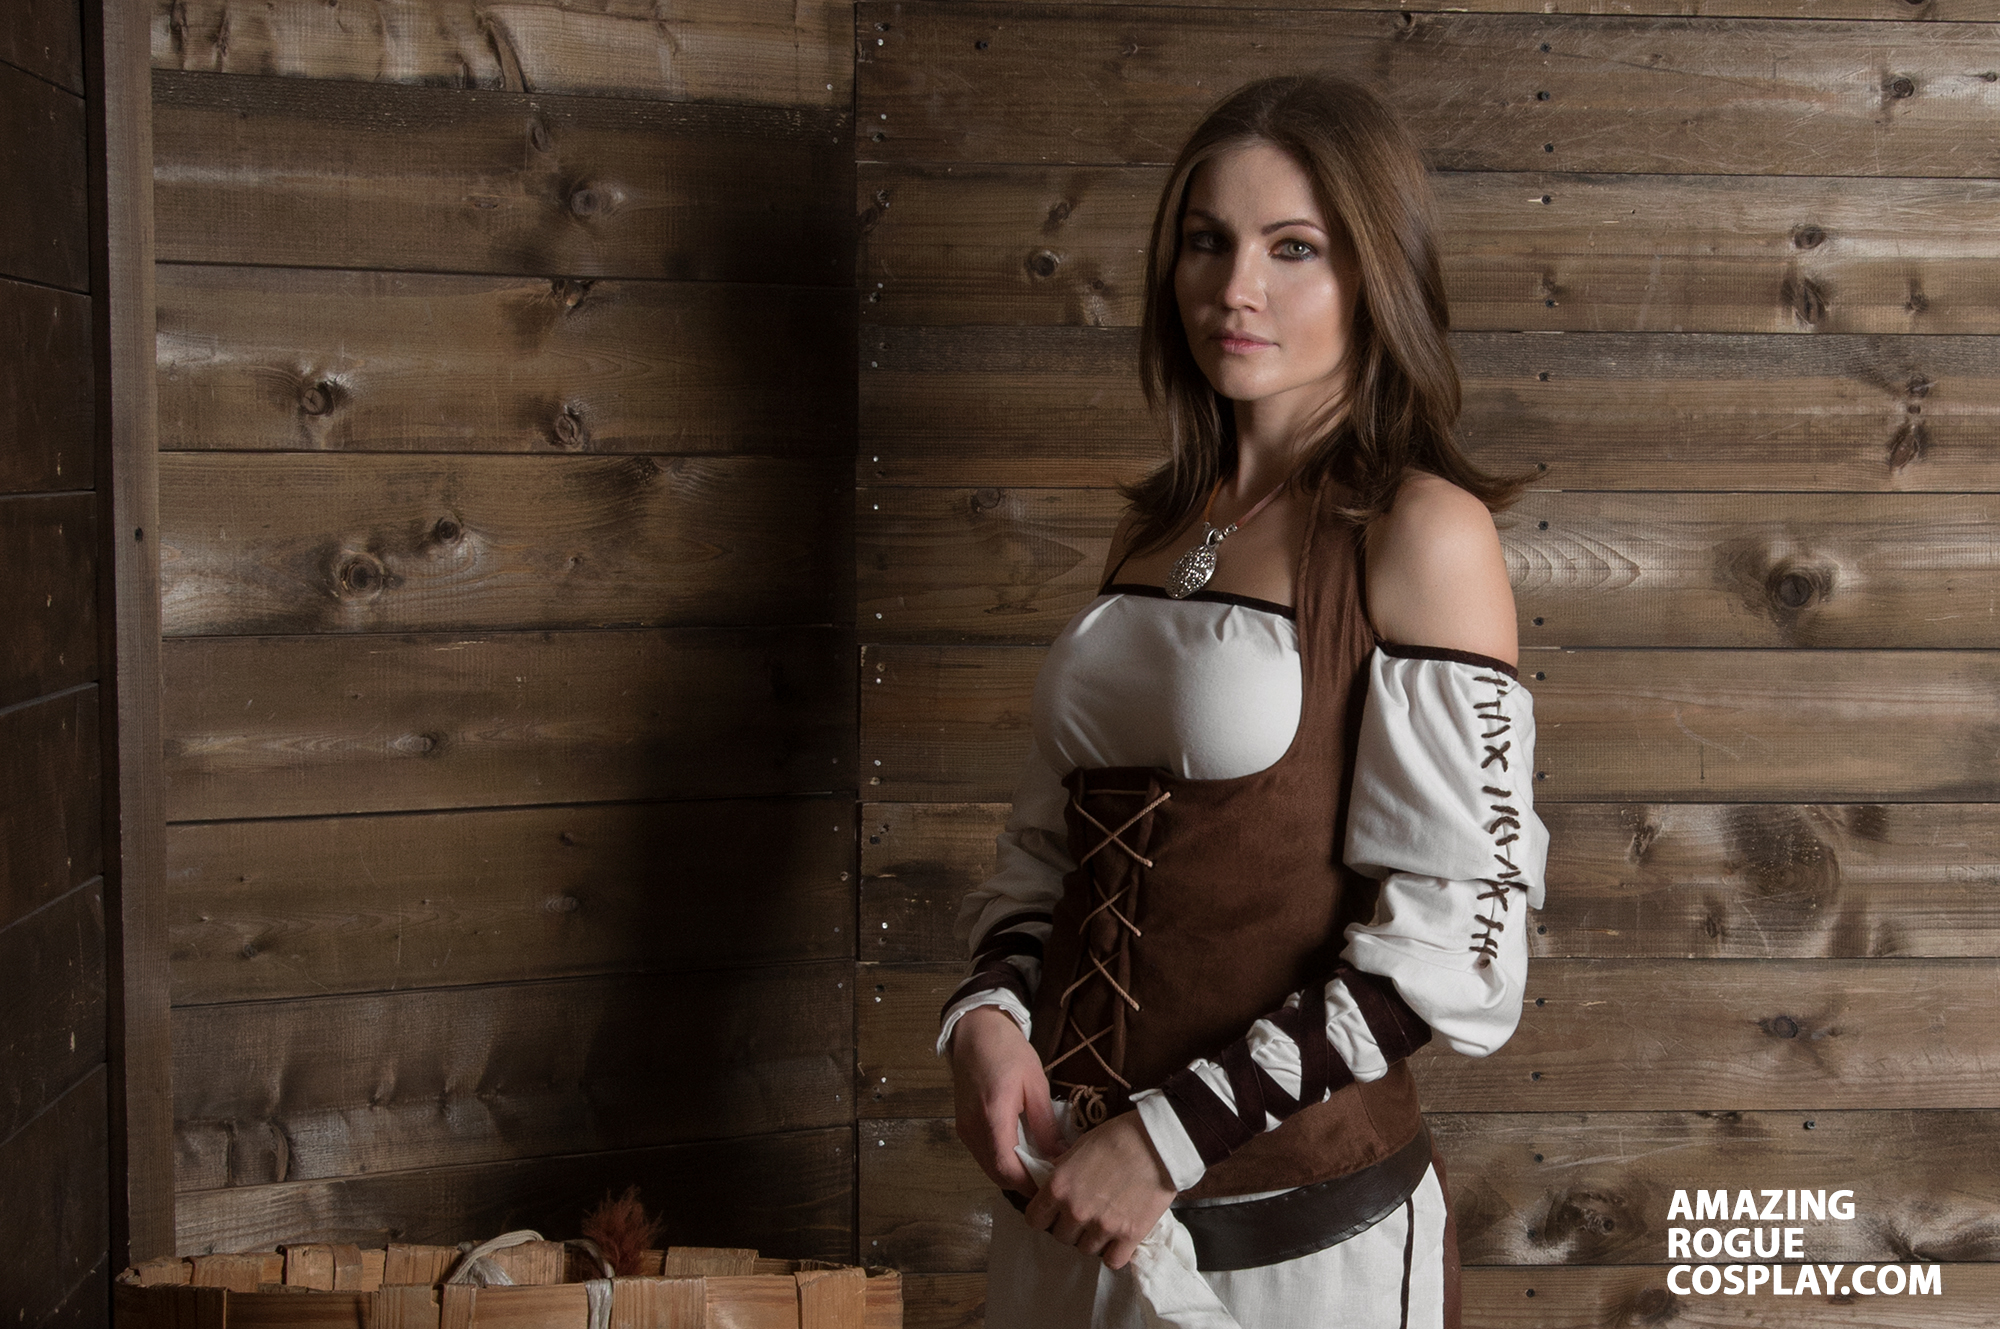 skyrum tesv tes elder scrolls cosplay gamecosplay